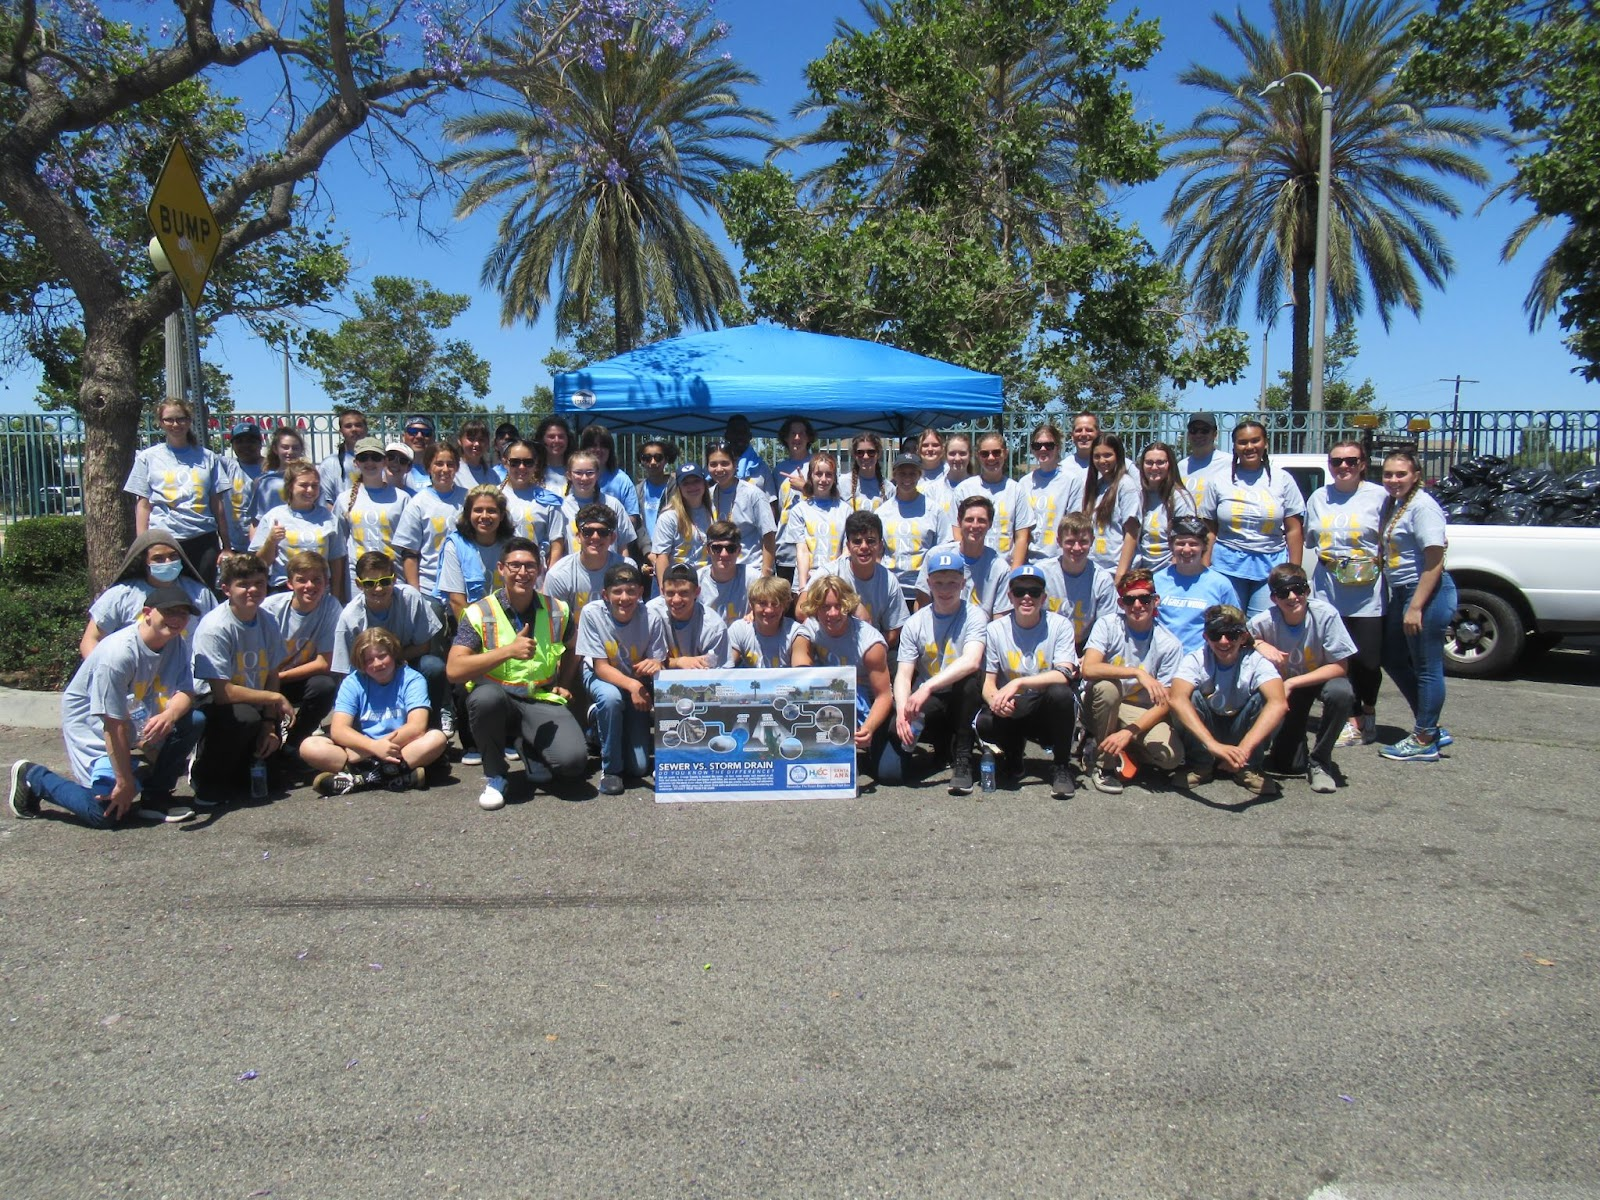 An image of over 50 people posing in front of a blue shade tent and some trees. They're all wearing grey and light blue shirts, and are all looking at the camera.